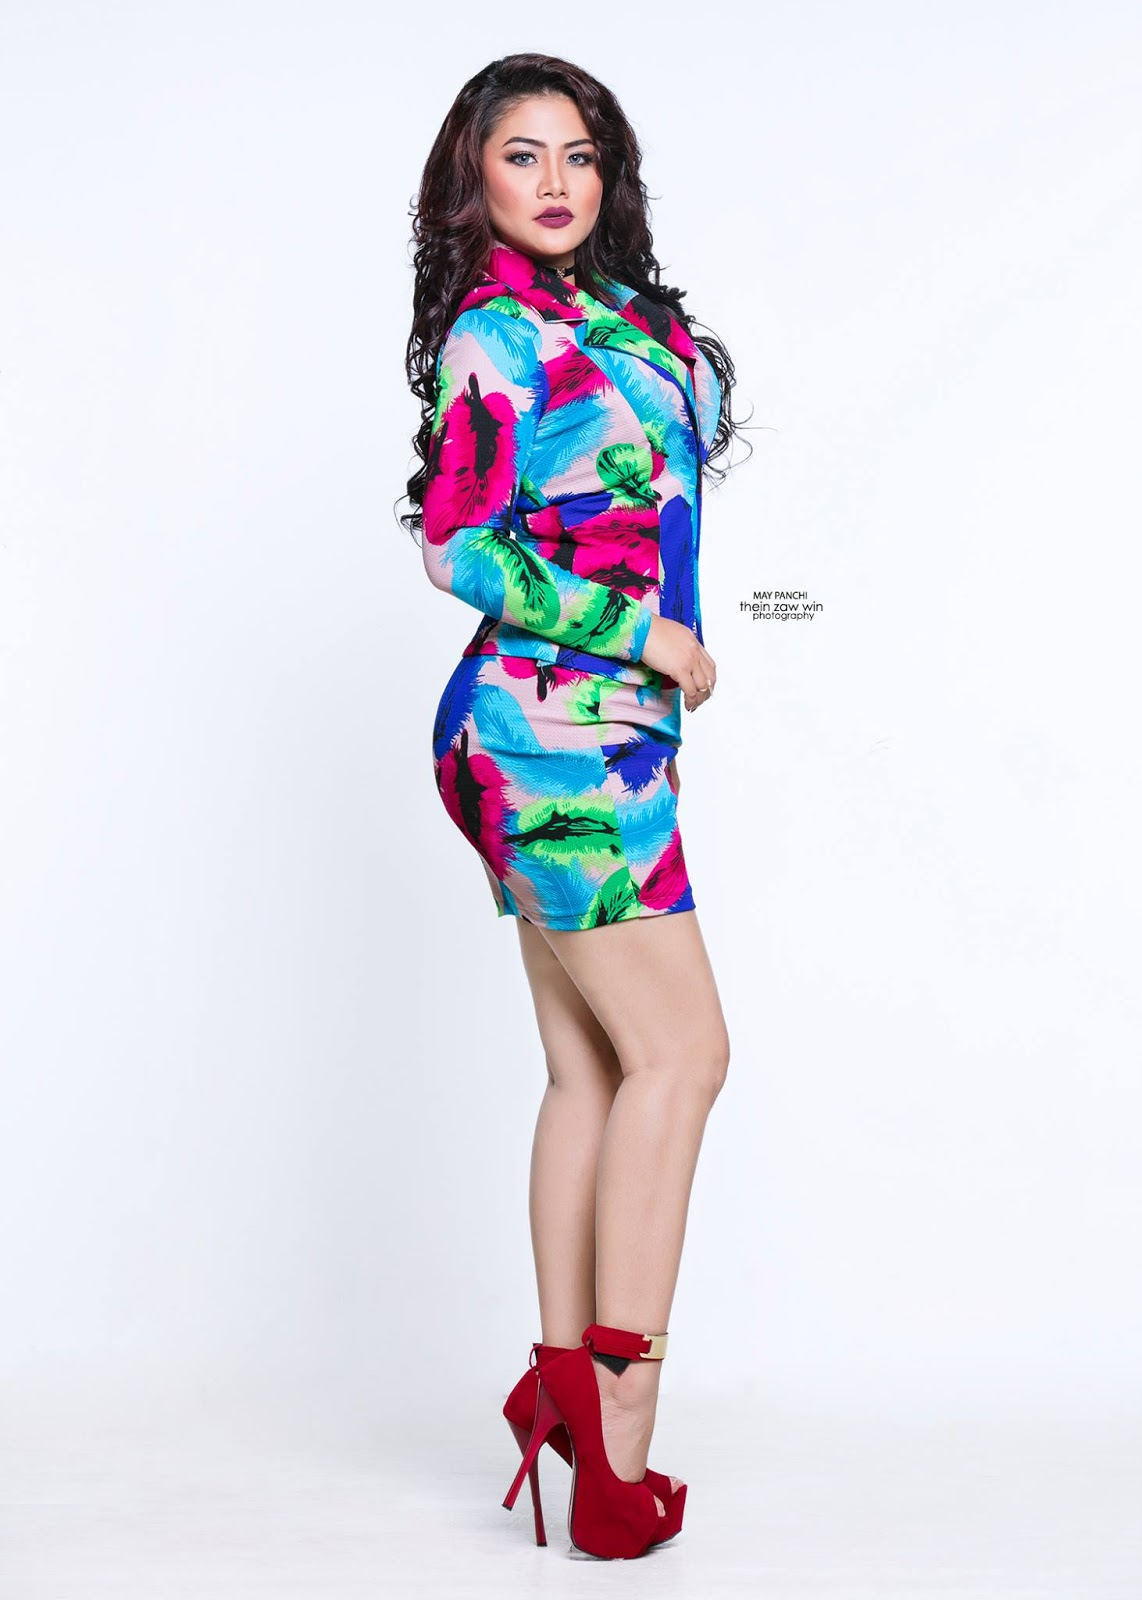 May Pachi Colorful Studio Fashion Photoshoot